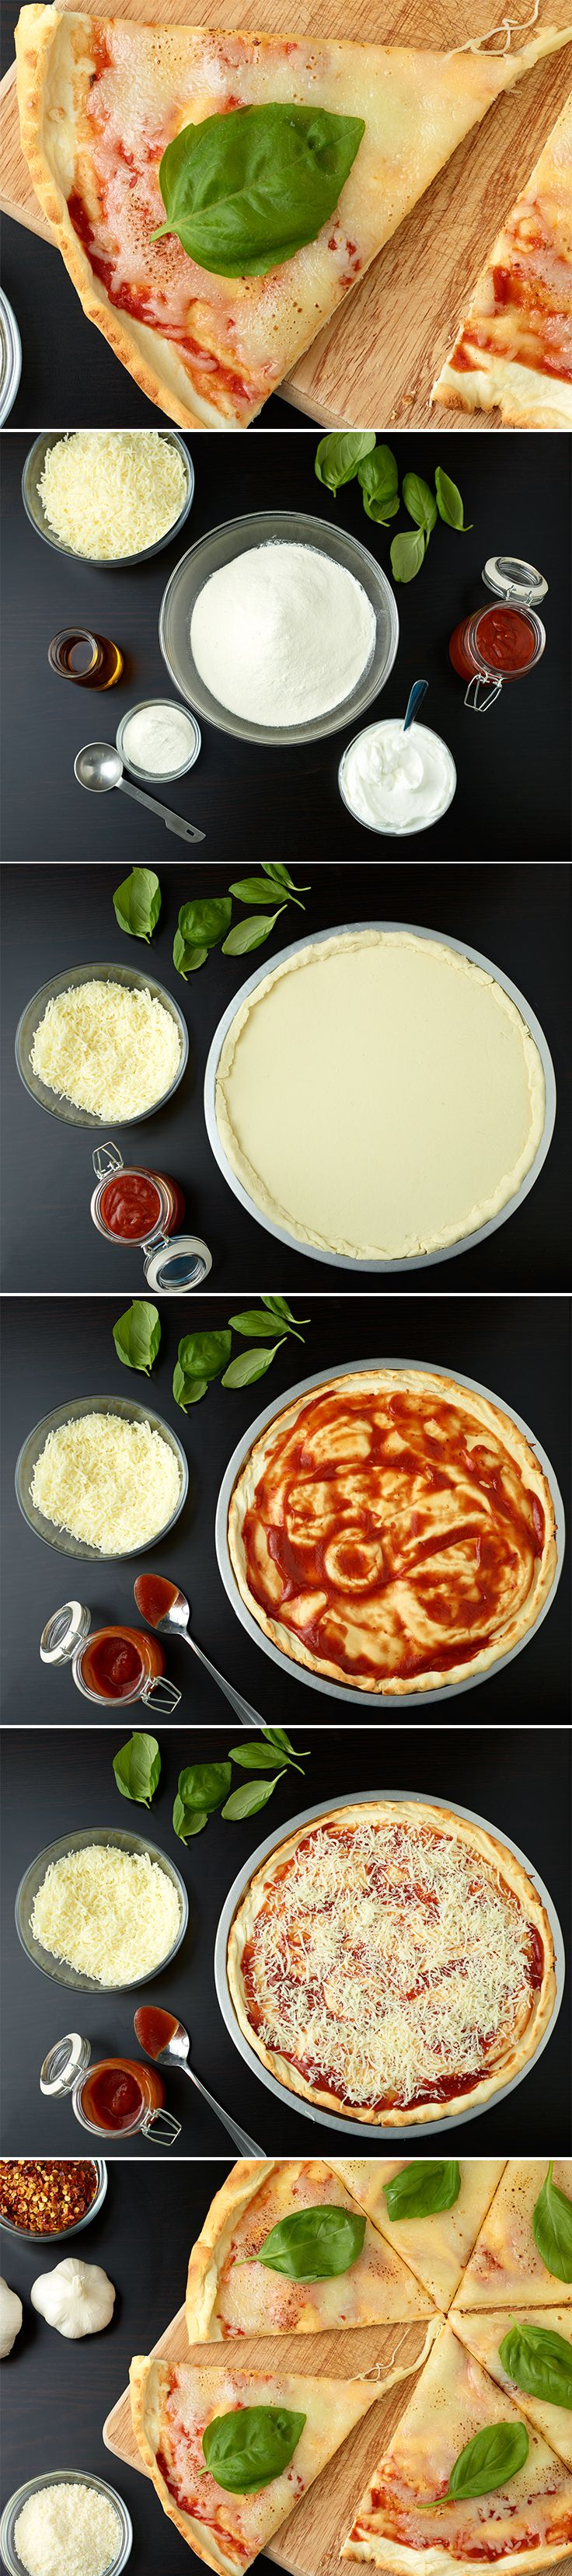 Quest Five Ingredient Pizza - This simple and EASY recipe will win your heart and make you forget about the delivery guy!